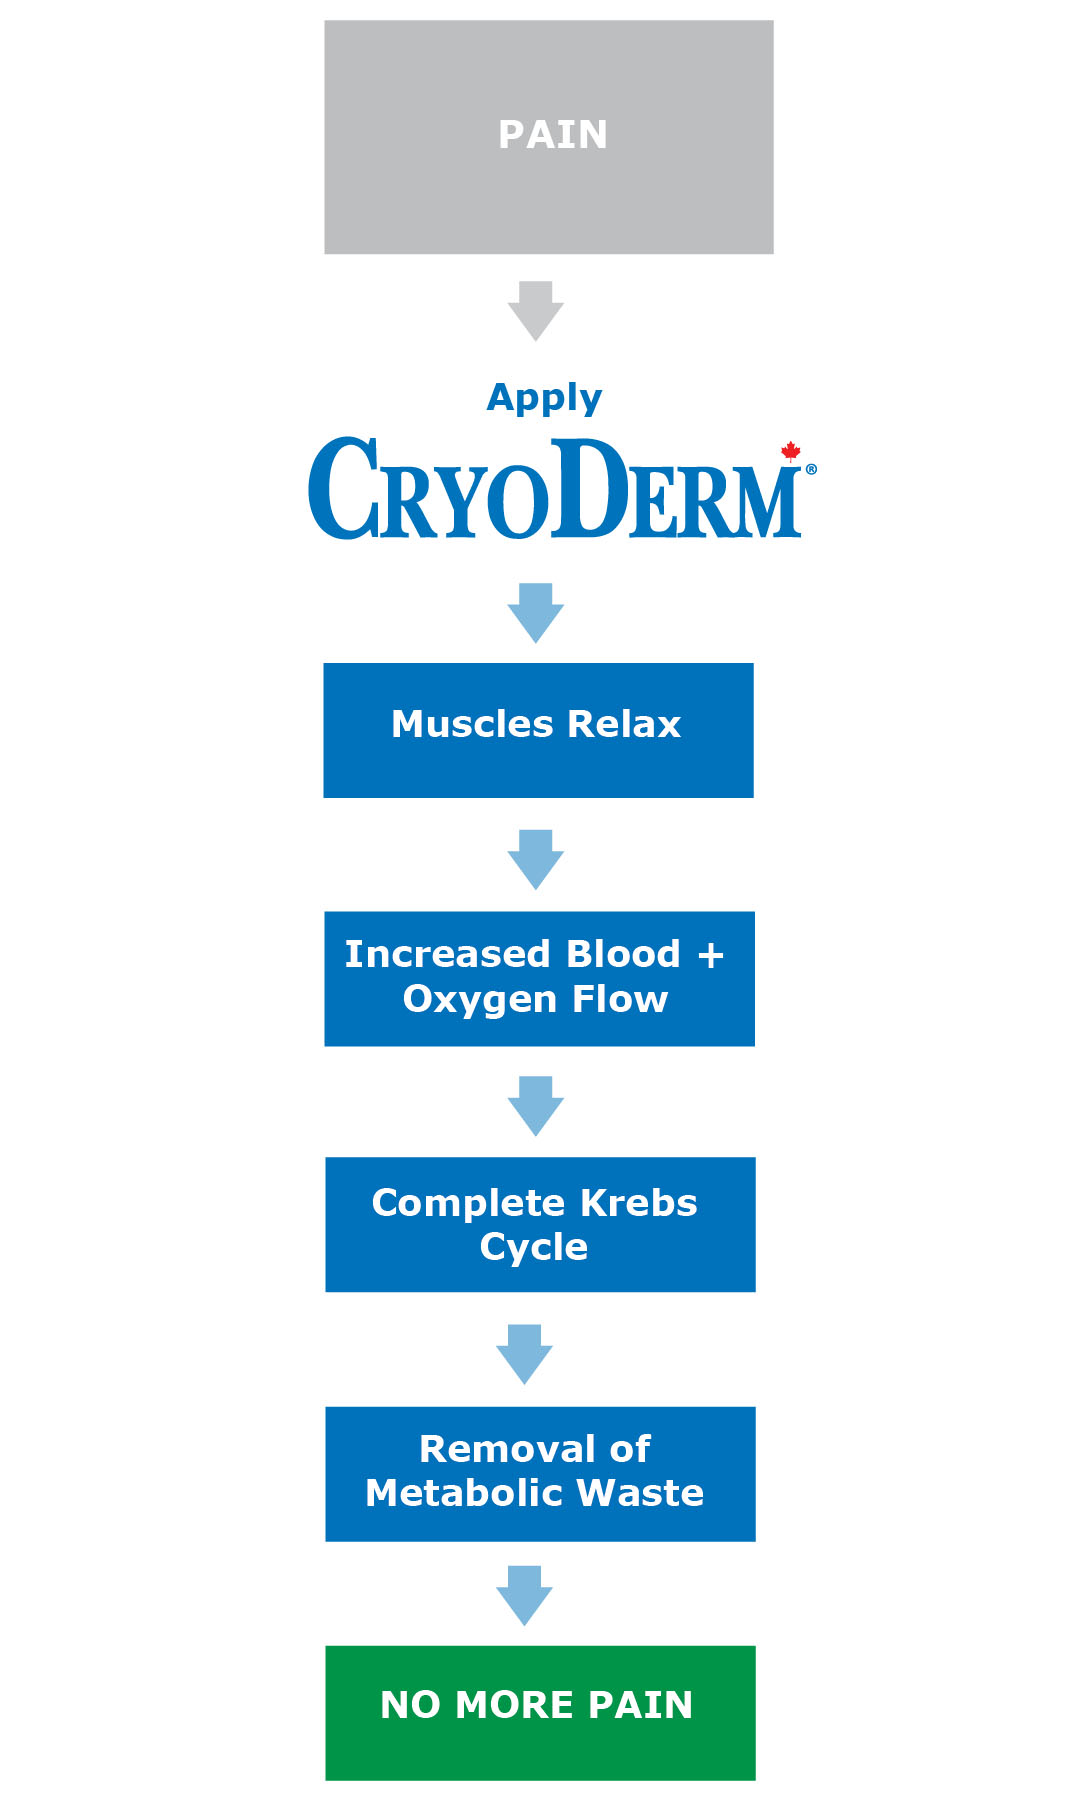 With CryoDerm